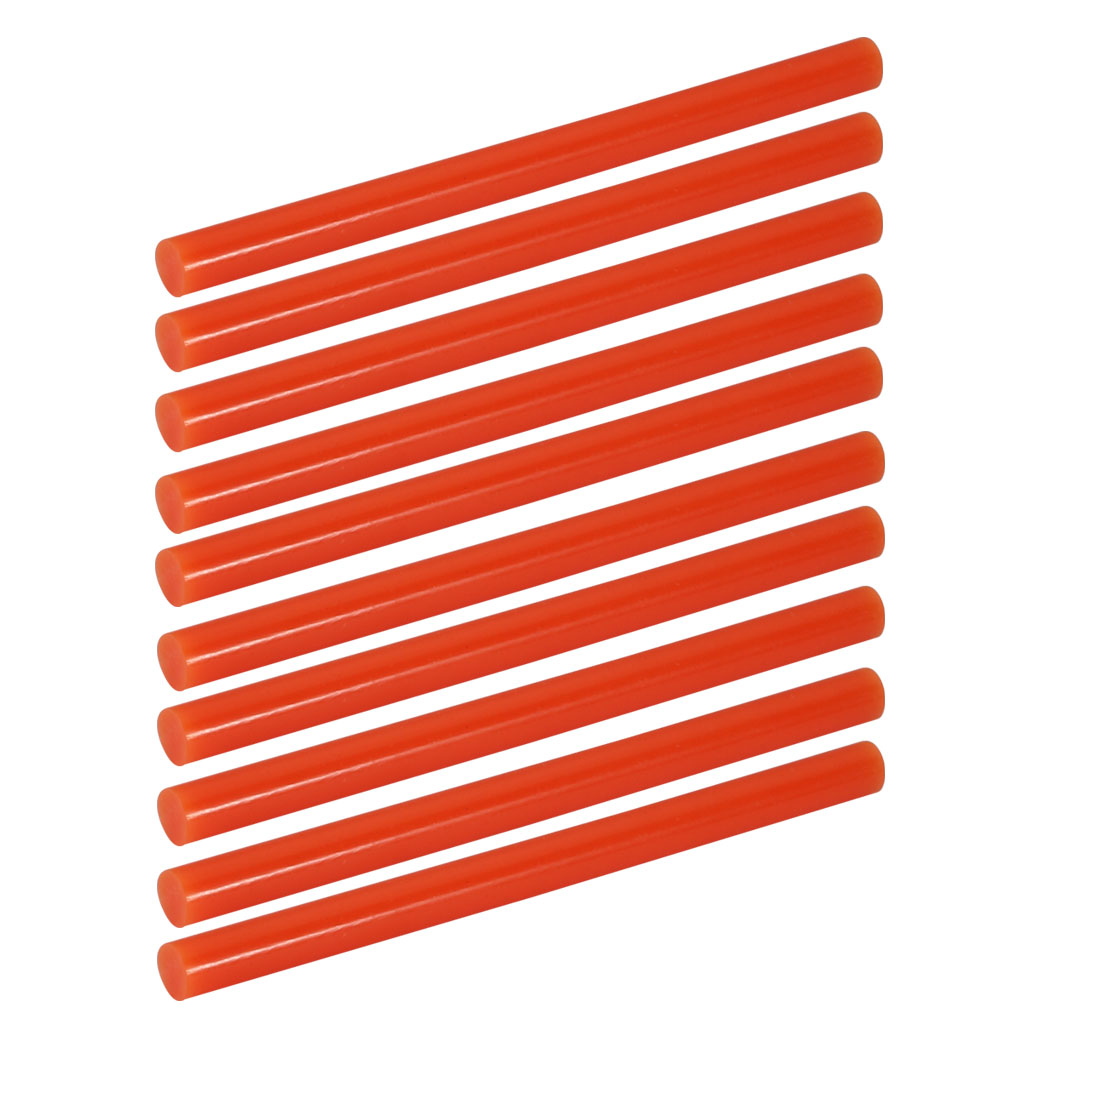 10pcs 7mm Dia 100mm Long Hot Melt Glue Adhesive Stick Orange